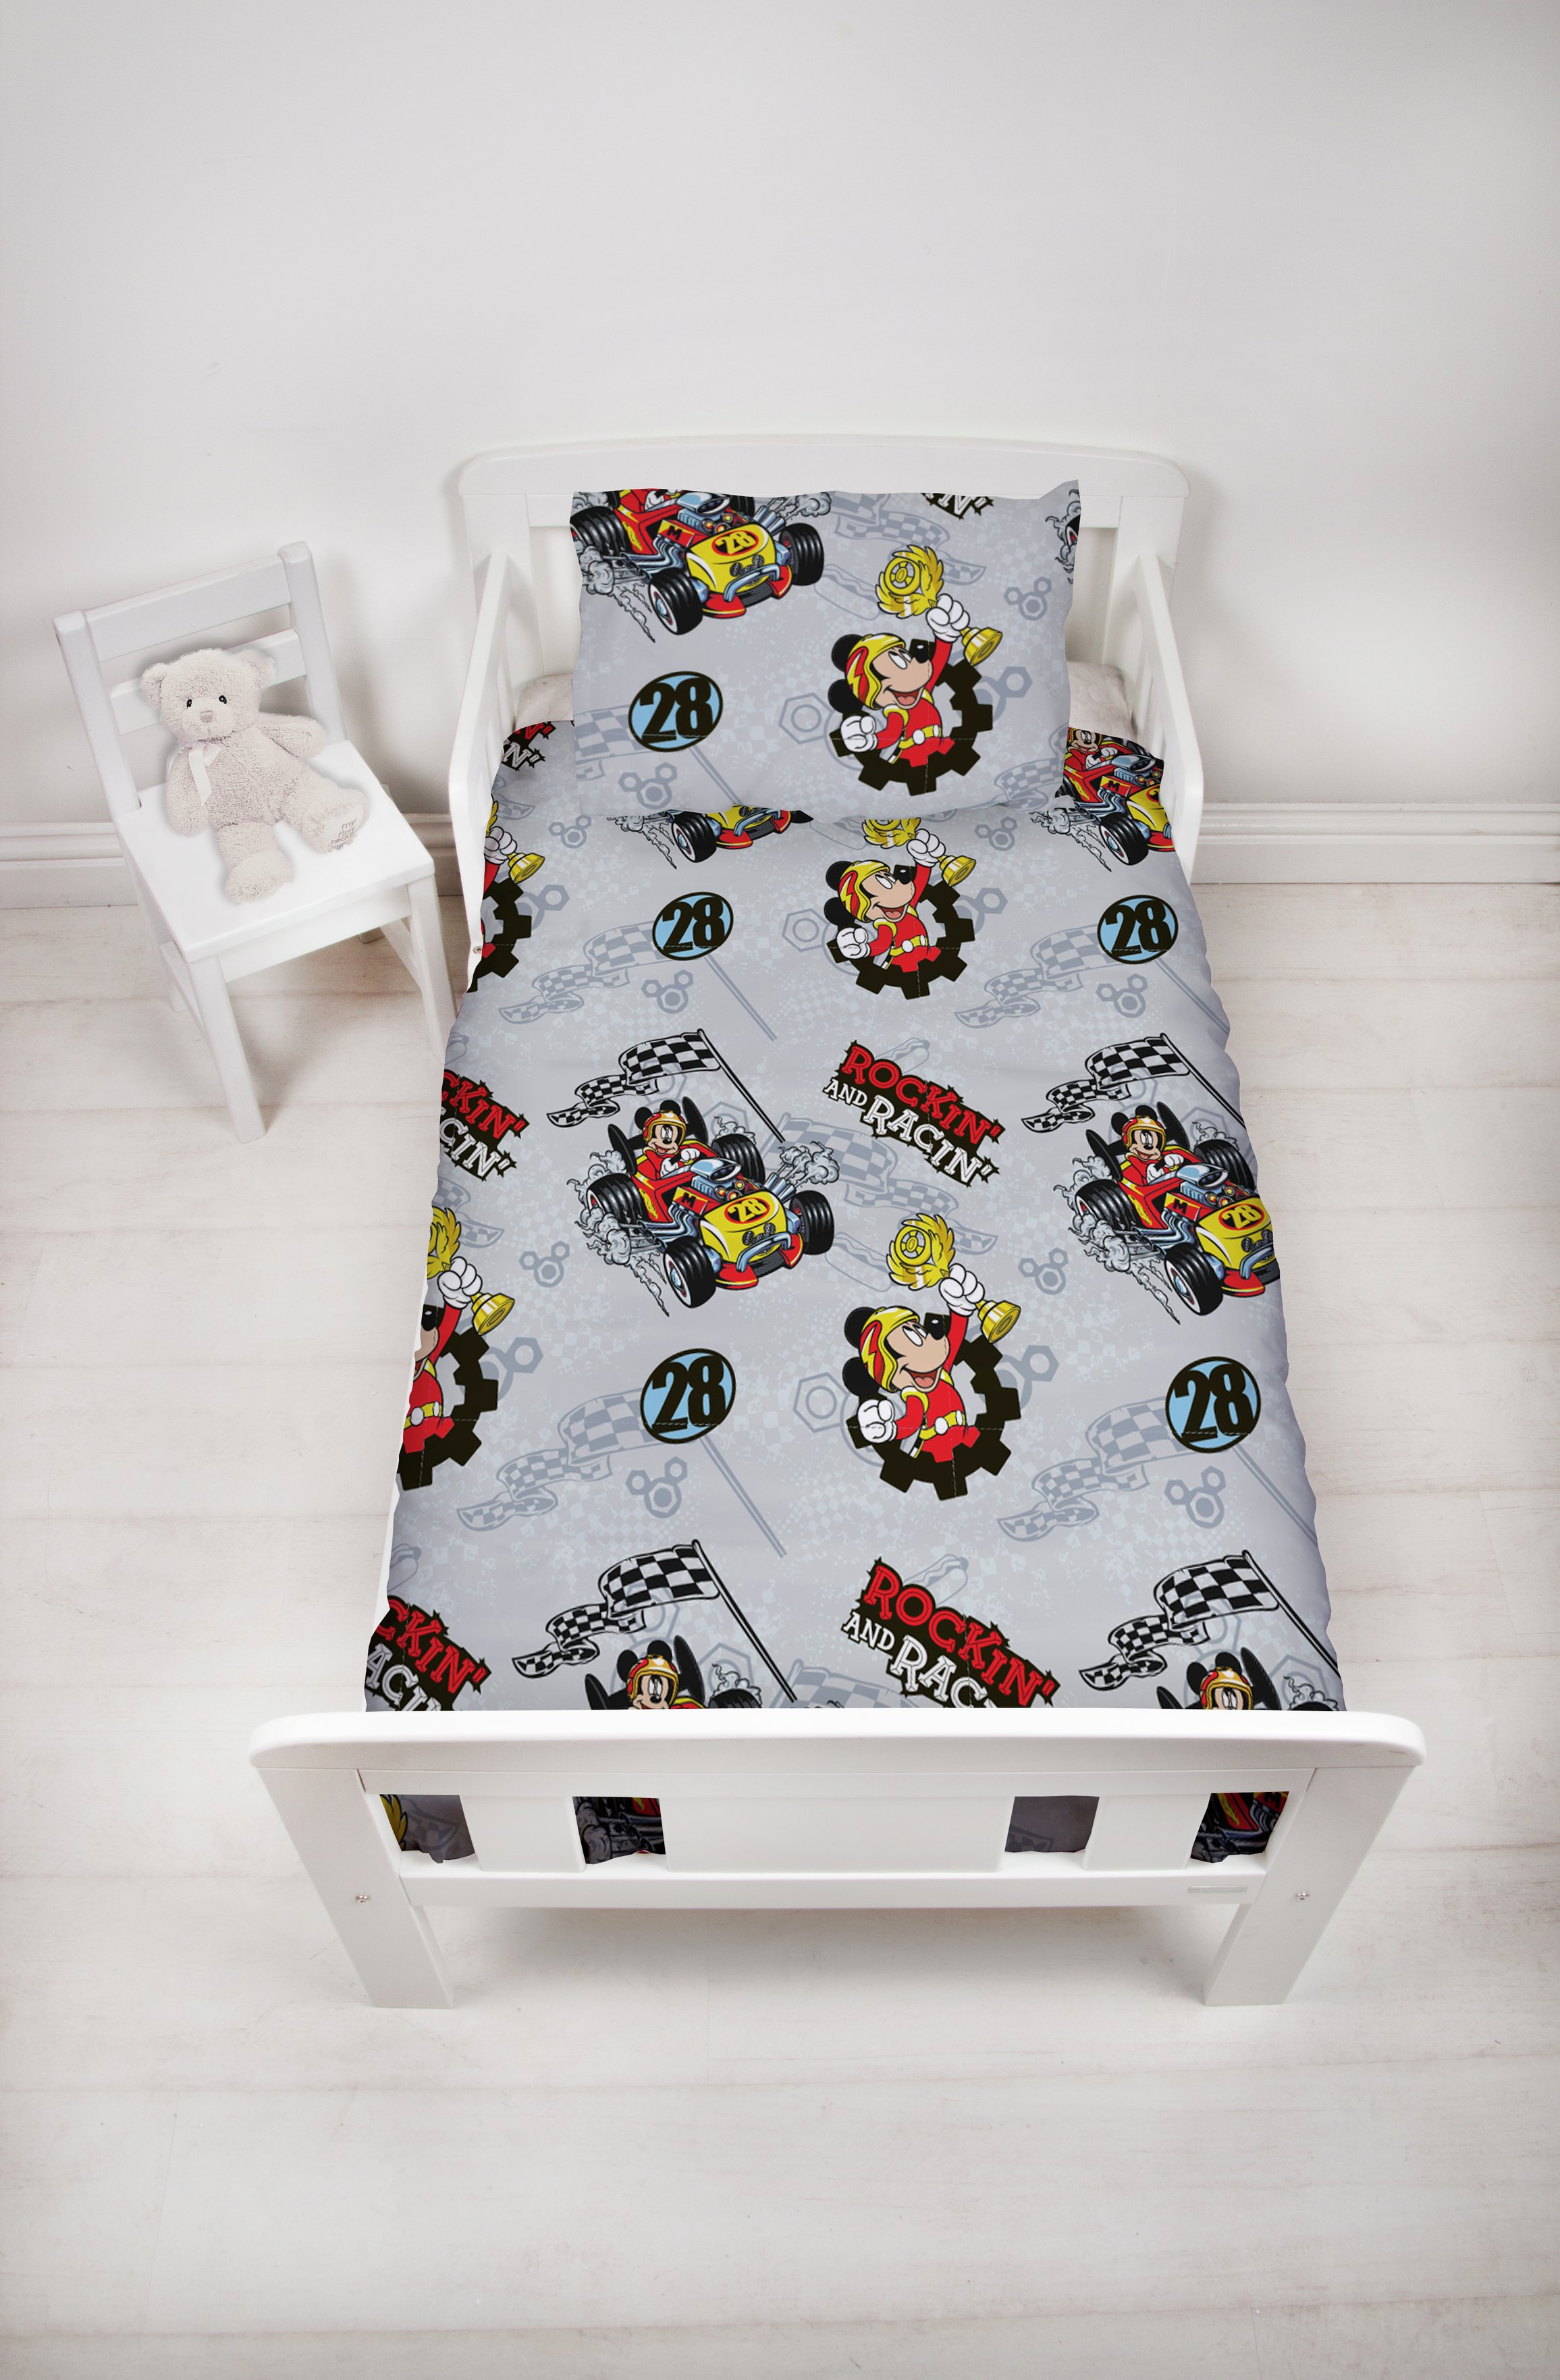 Mickey Mouse Racer Toddler Bed in a Bag Set